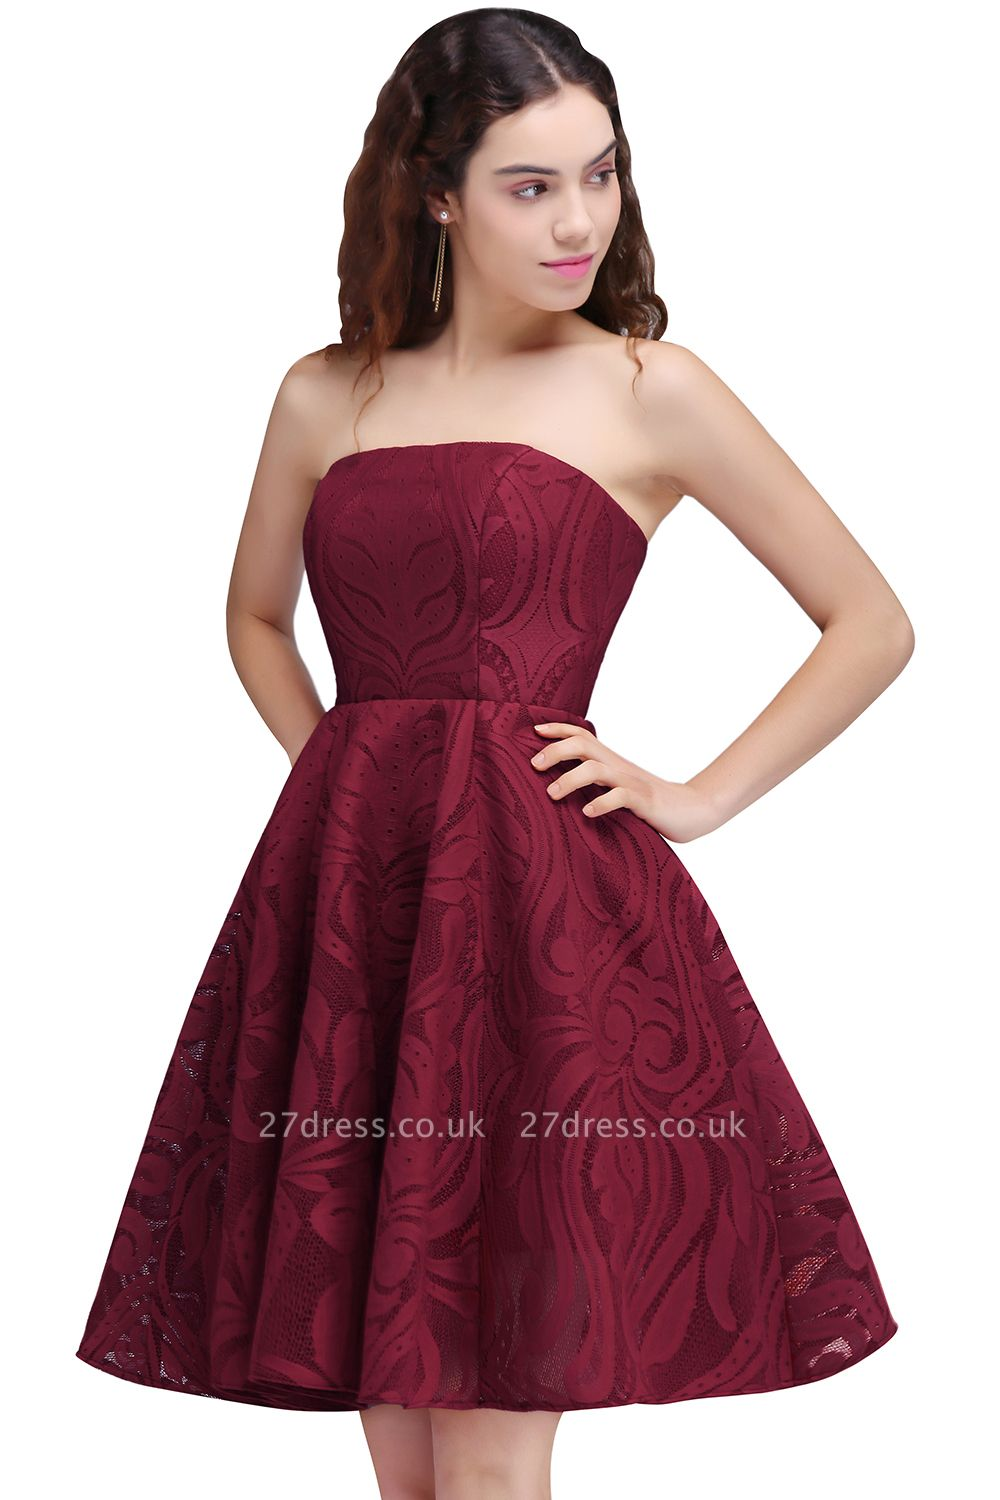 Short Simple Strapless Sleeveless Burgundy A-line Homecoming Dress UK